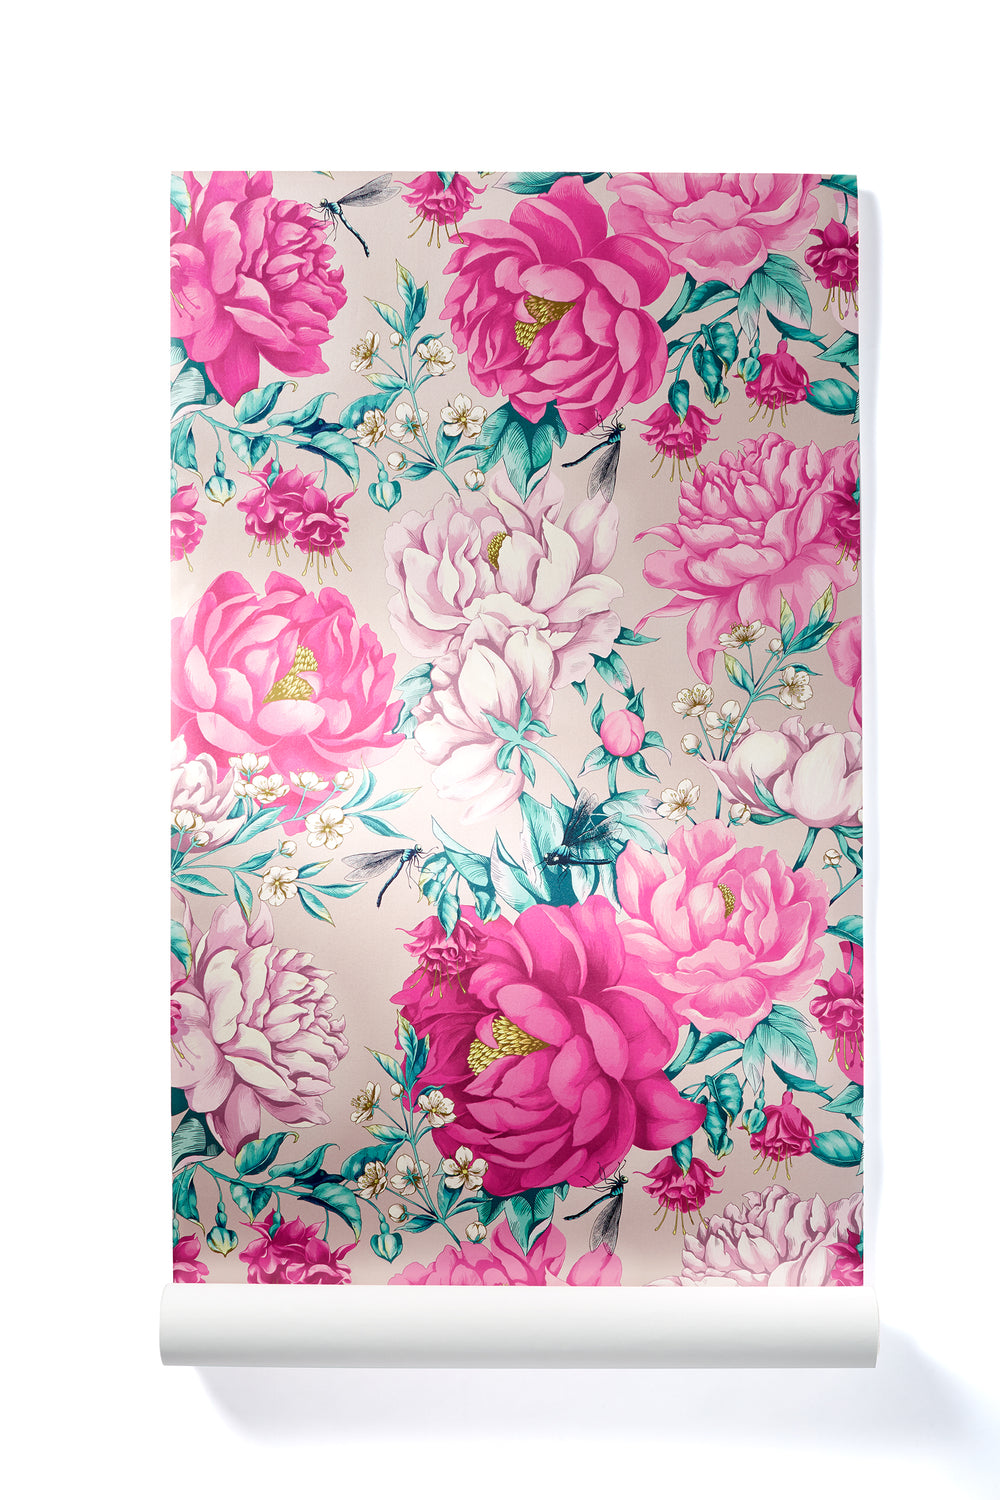 Everyday Miracles - Oversized Pink Peony Wallpaper, Shimmer Finish